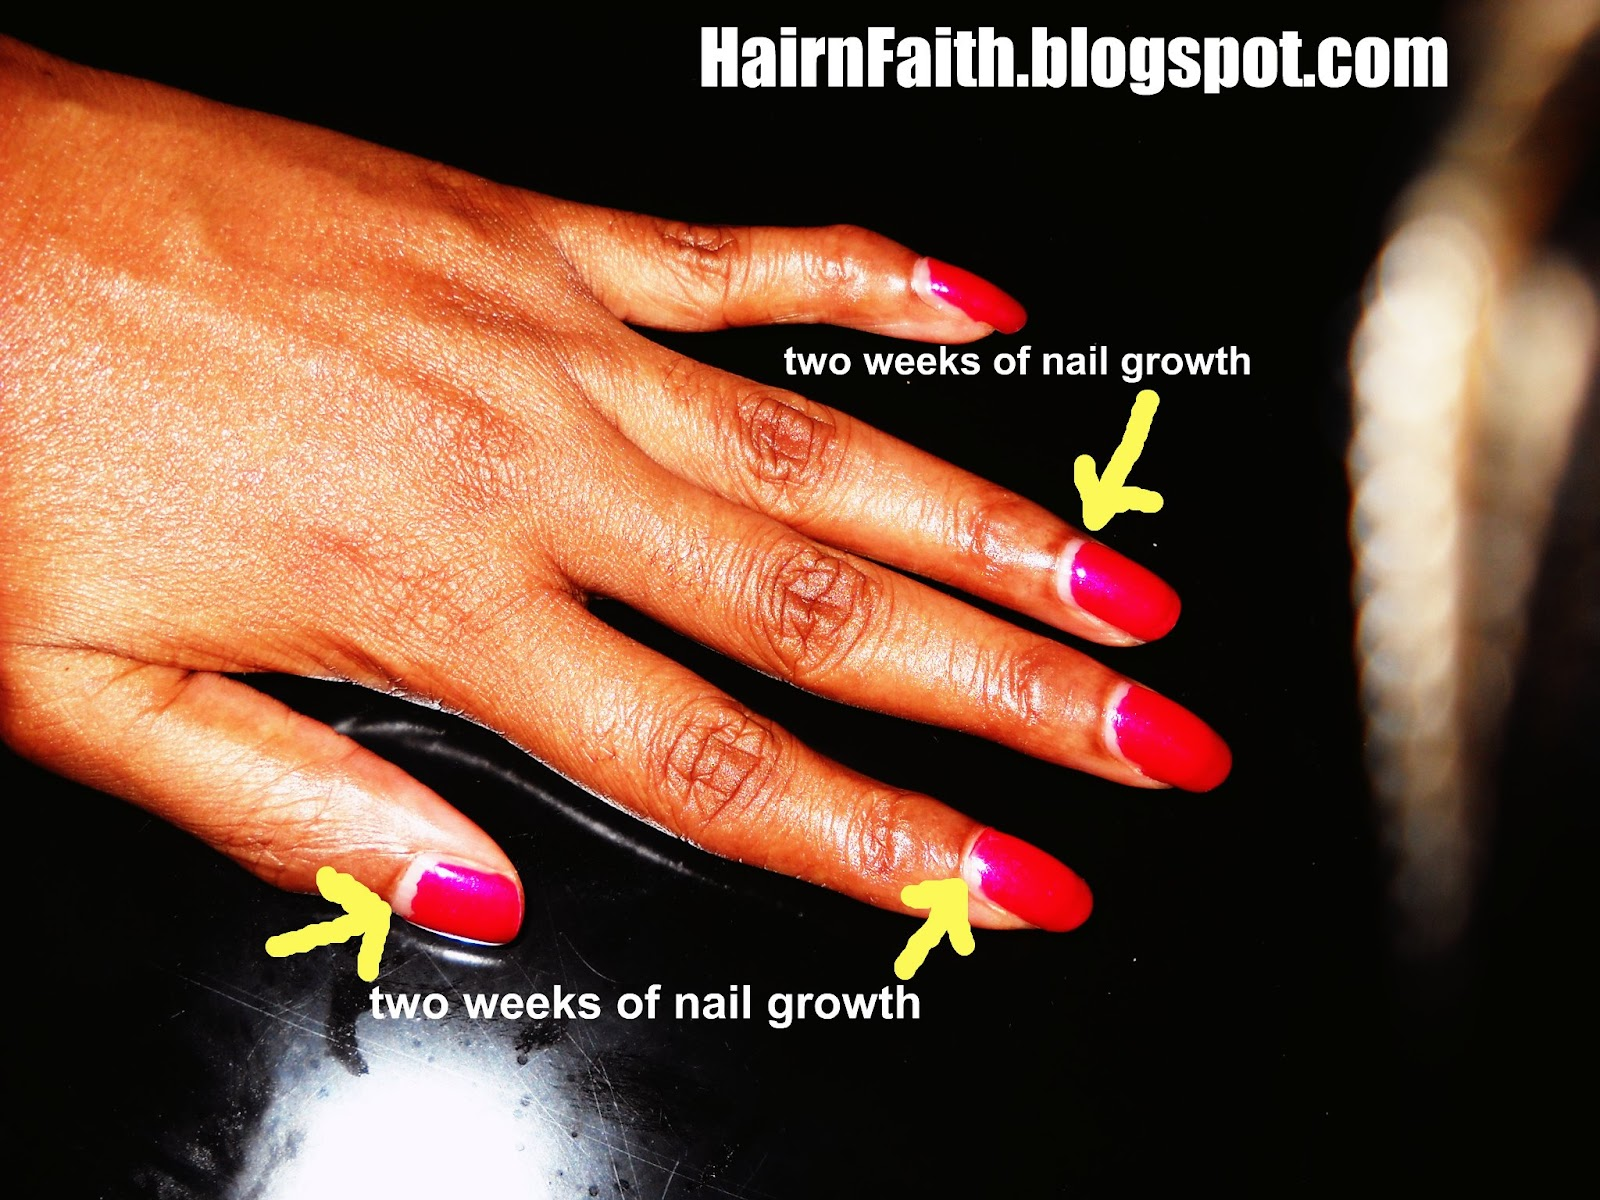 CoilyQueens™ : Nail health and growth from Mineral Rich